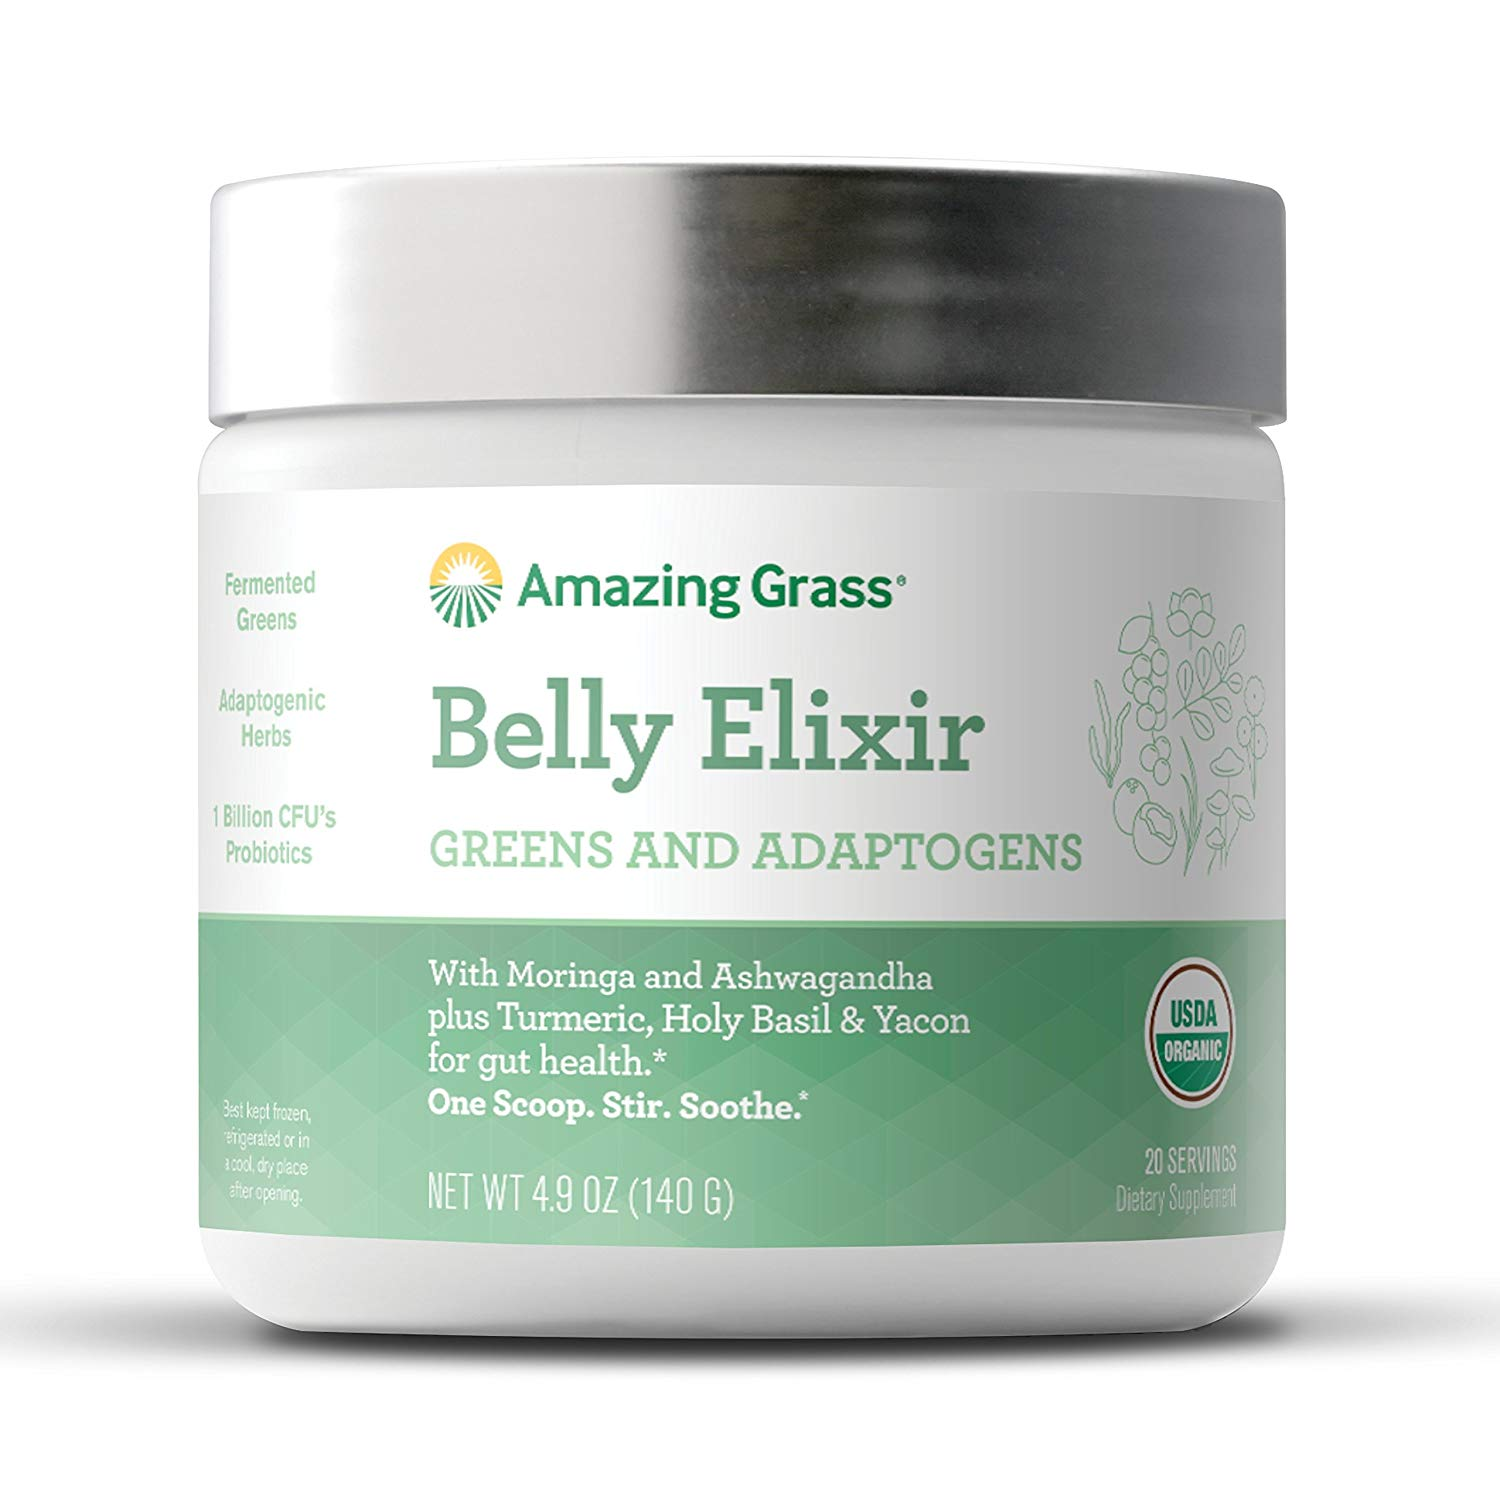 Amazing Grass Belly Elixir Powder with Greens & Adaptogens, 20 Servings